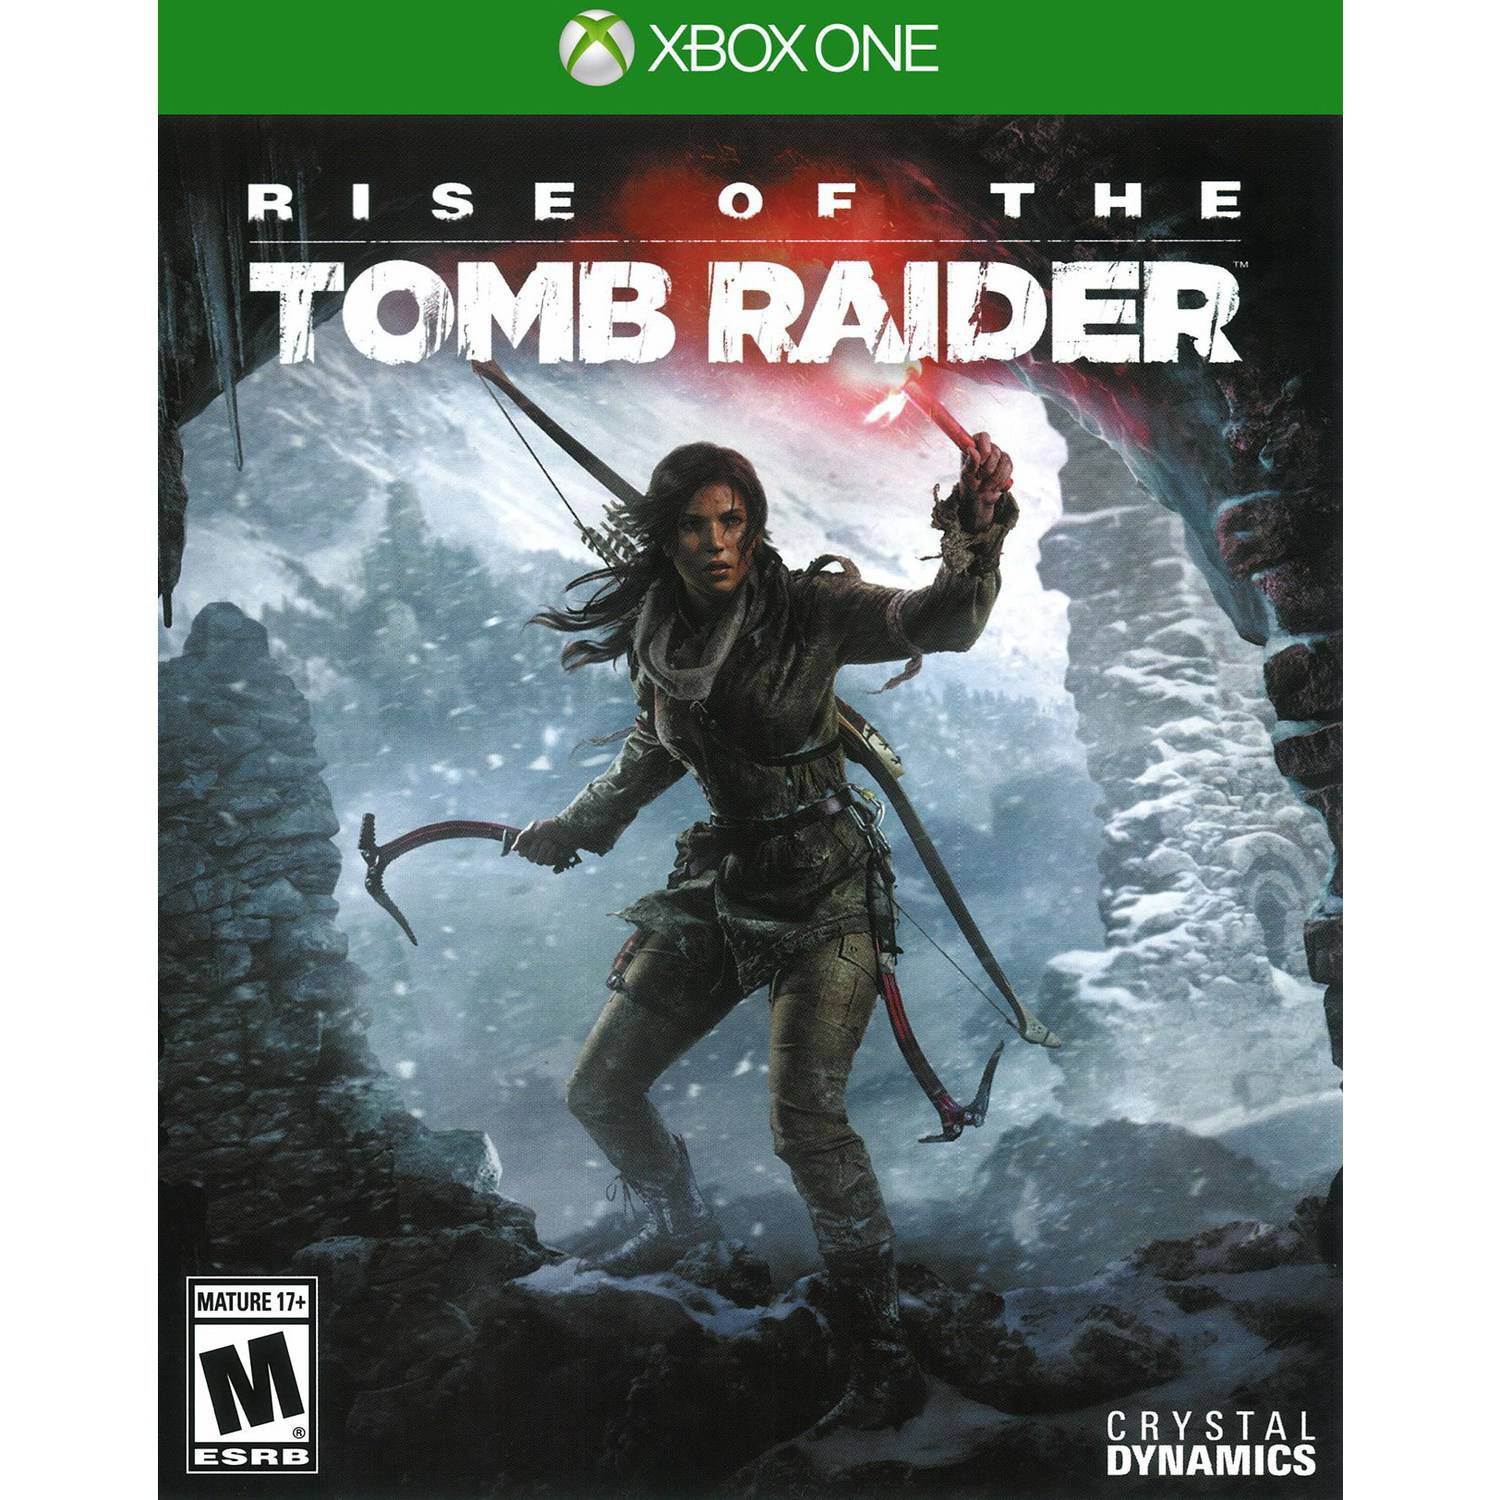 Rise Of The Tomb Raider (Xbox One) - Pre-Owned